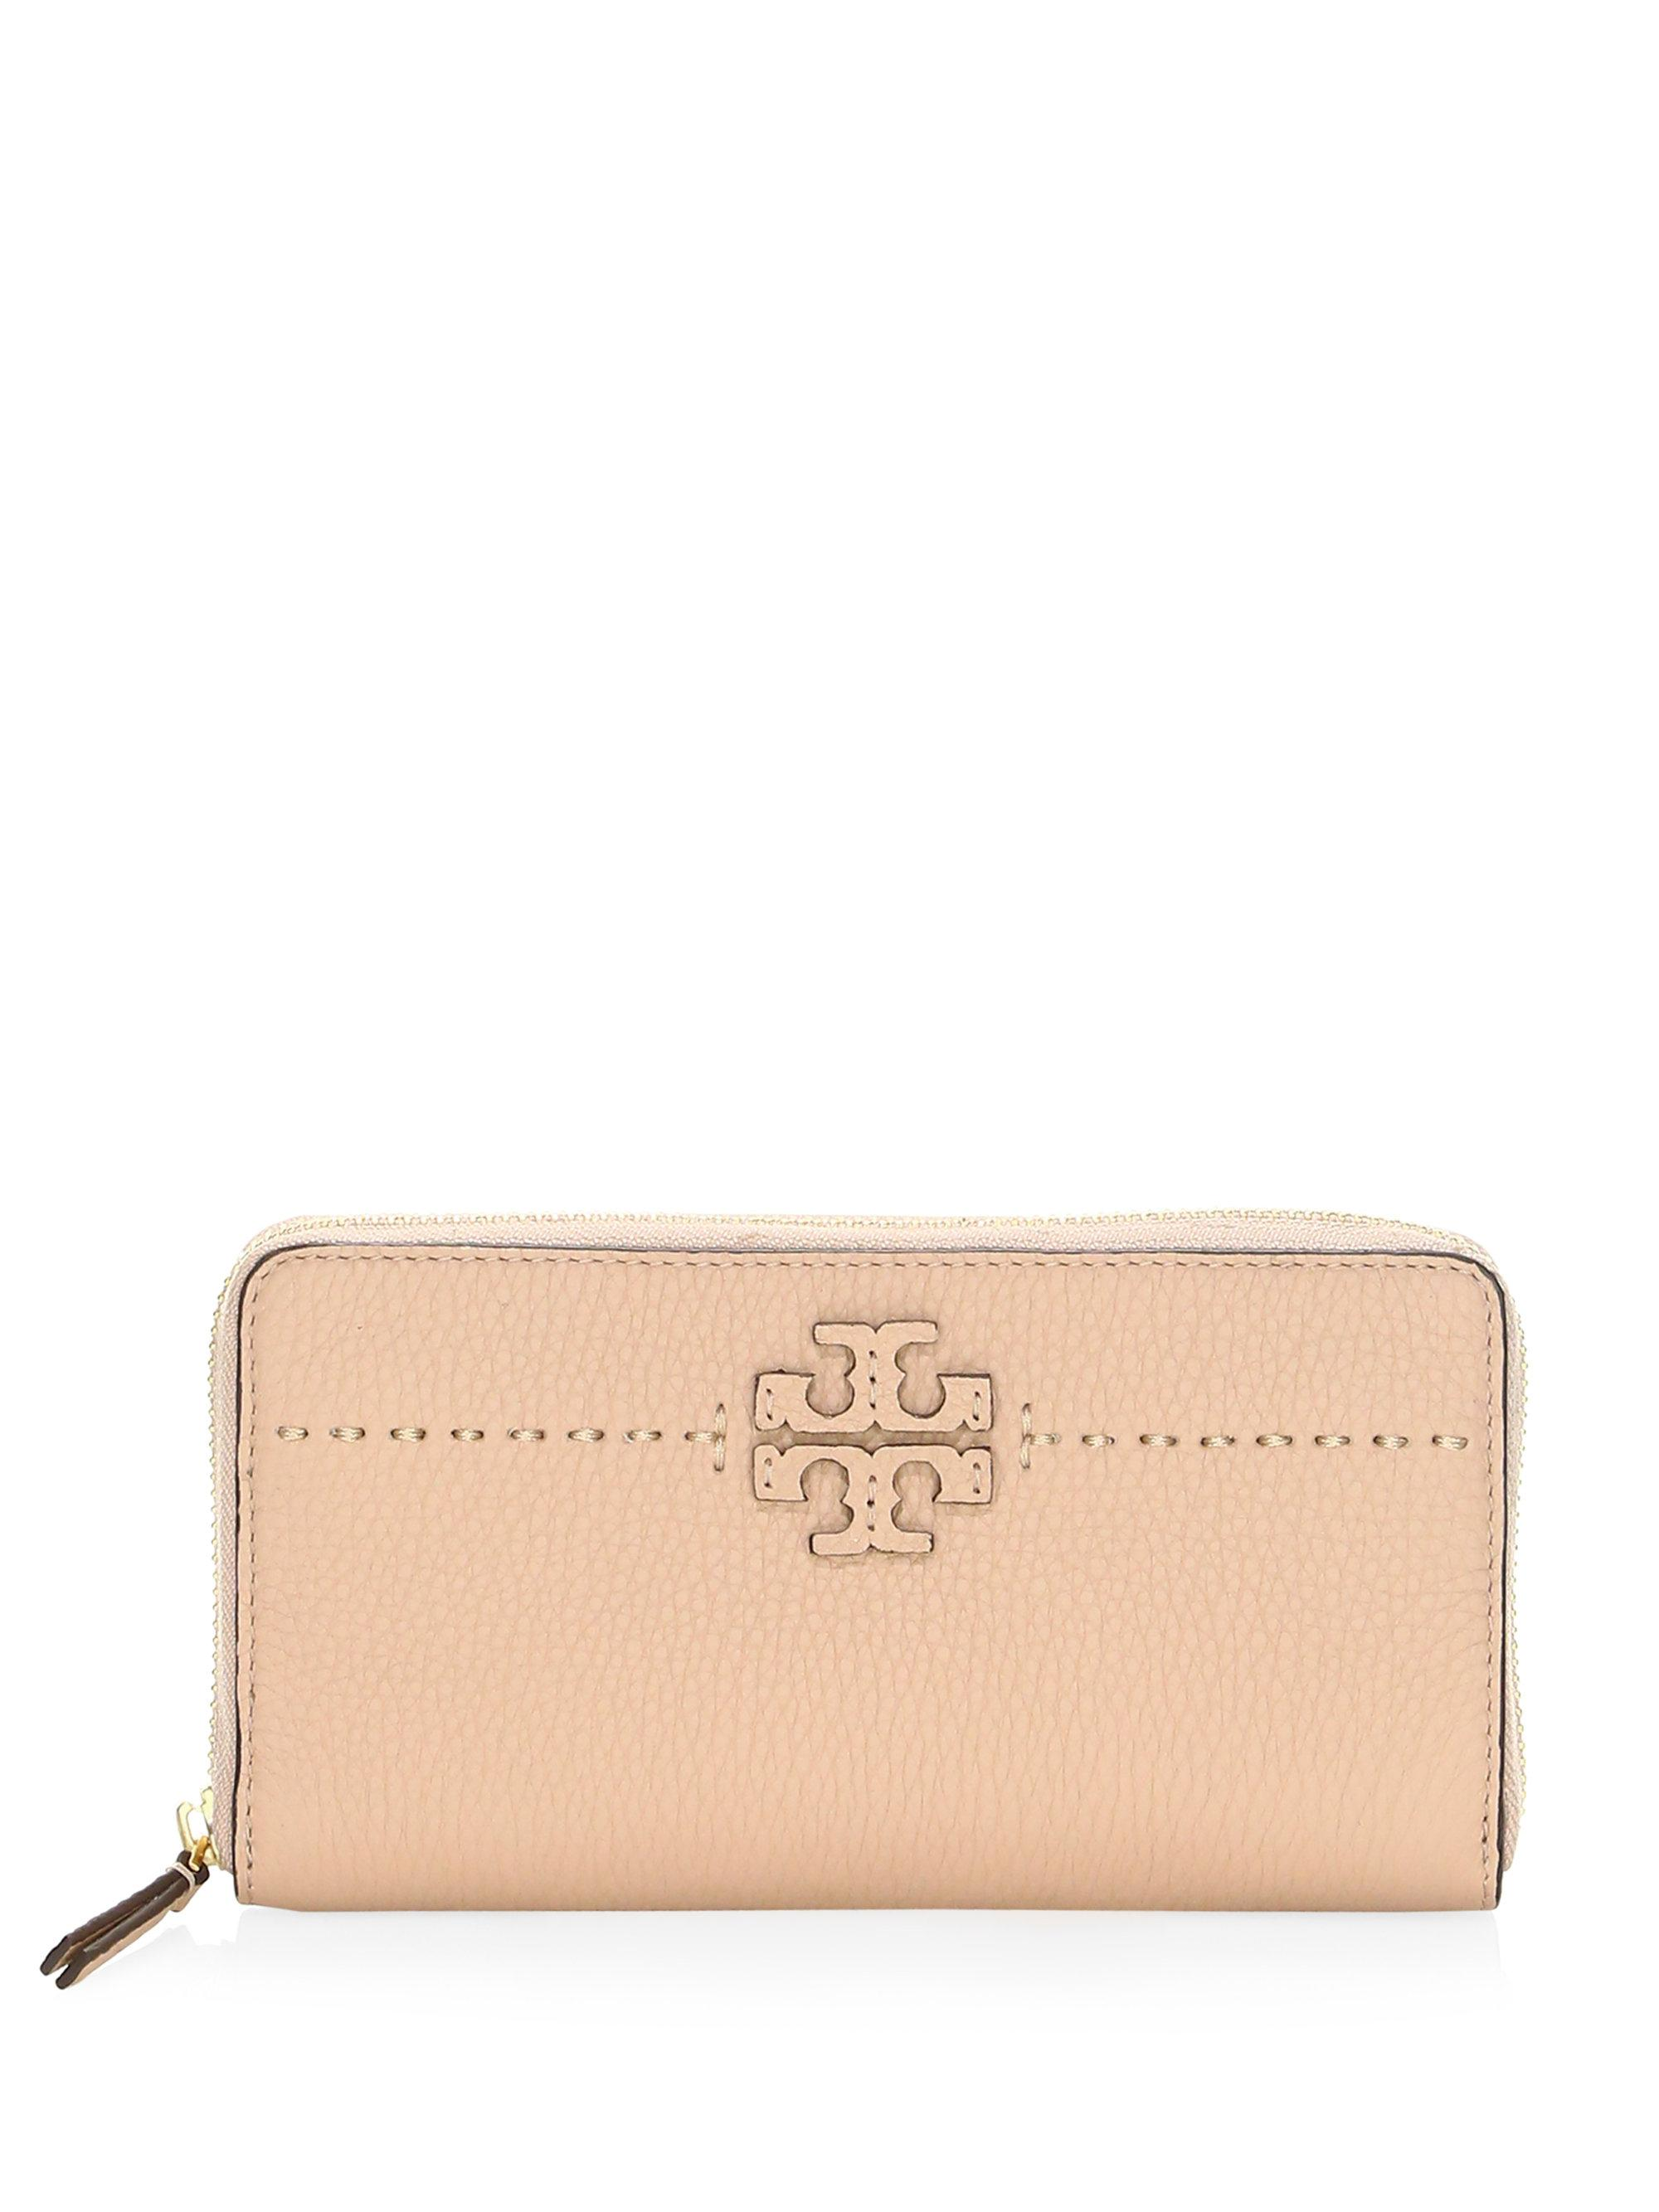 Tory Burch. Women's Natural Mcgraw Zip Leather Continental Wallet